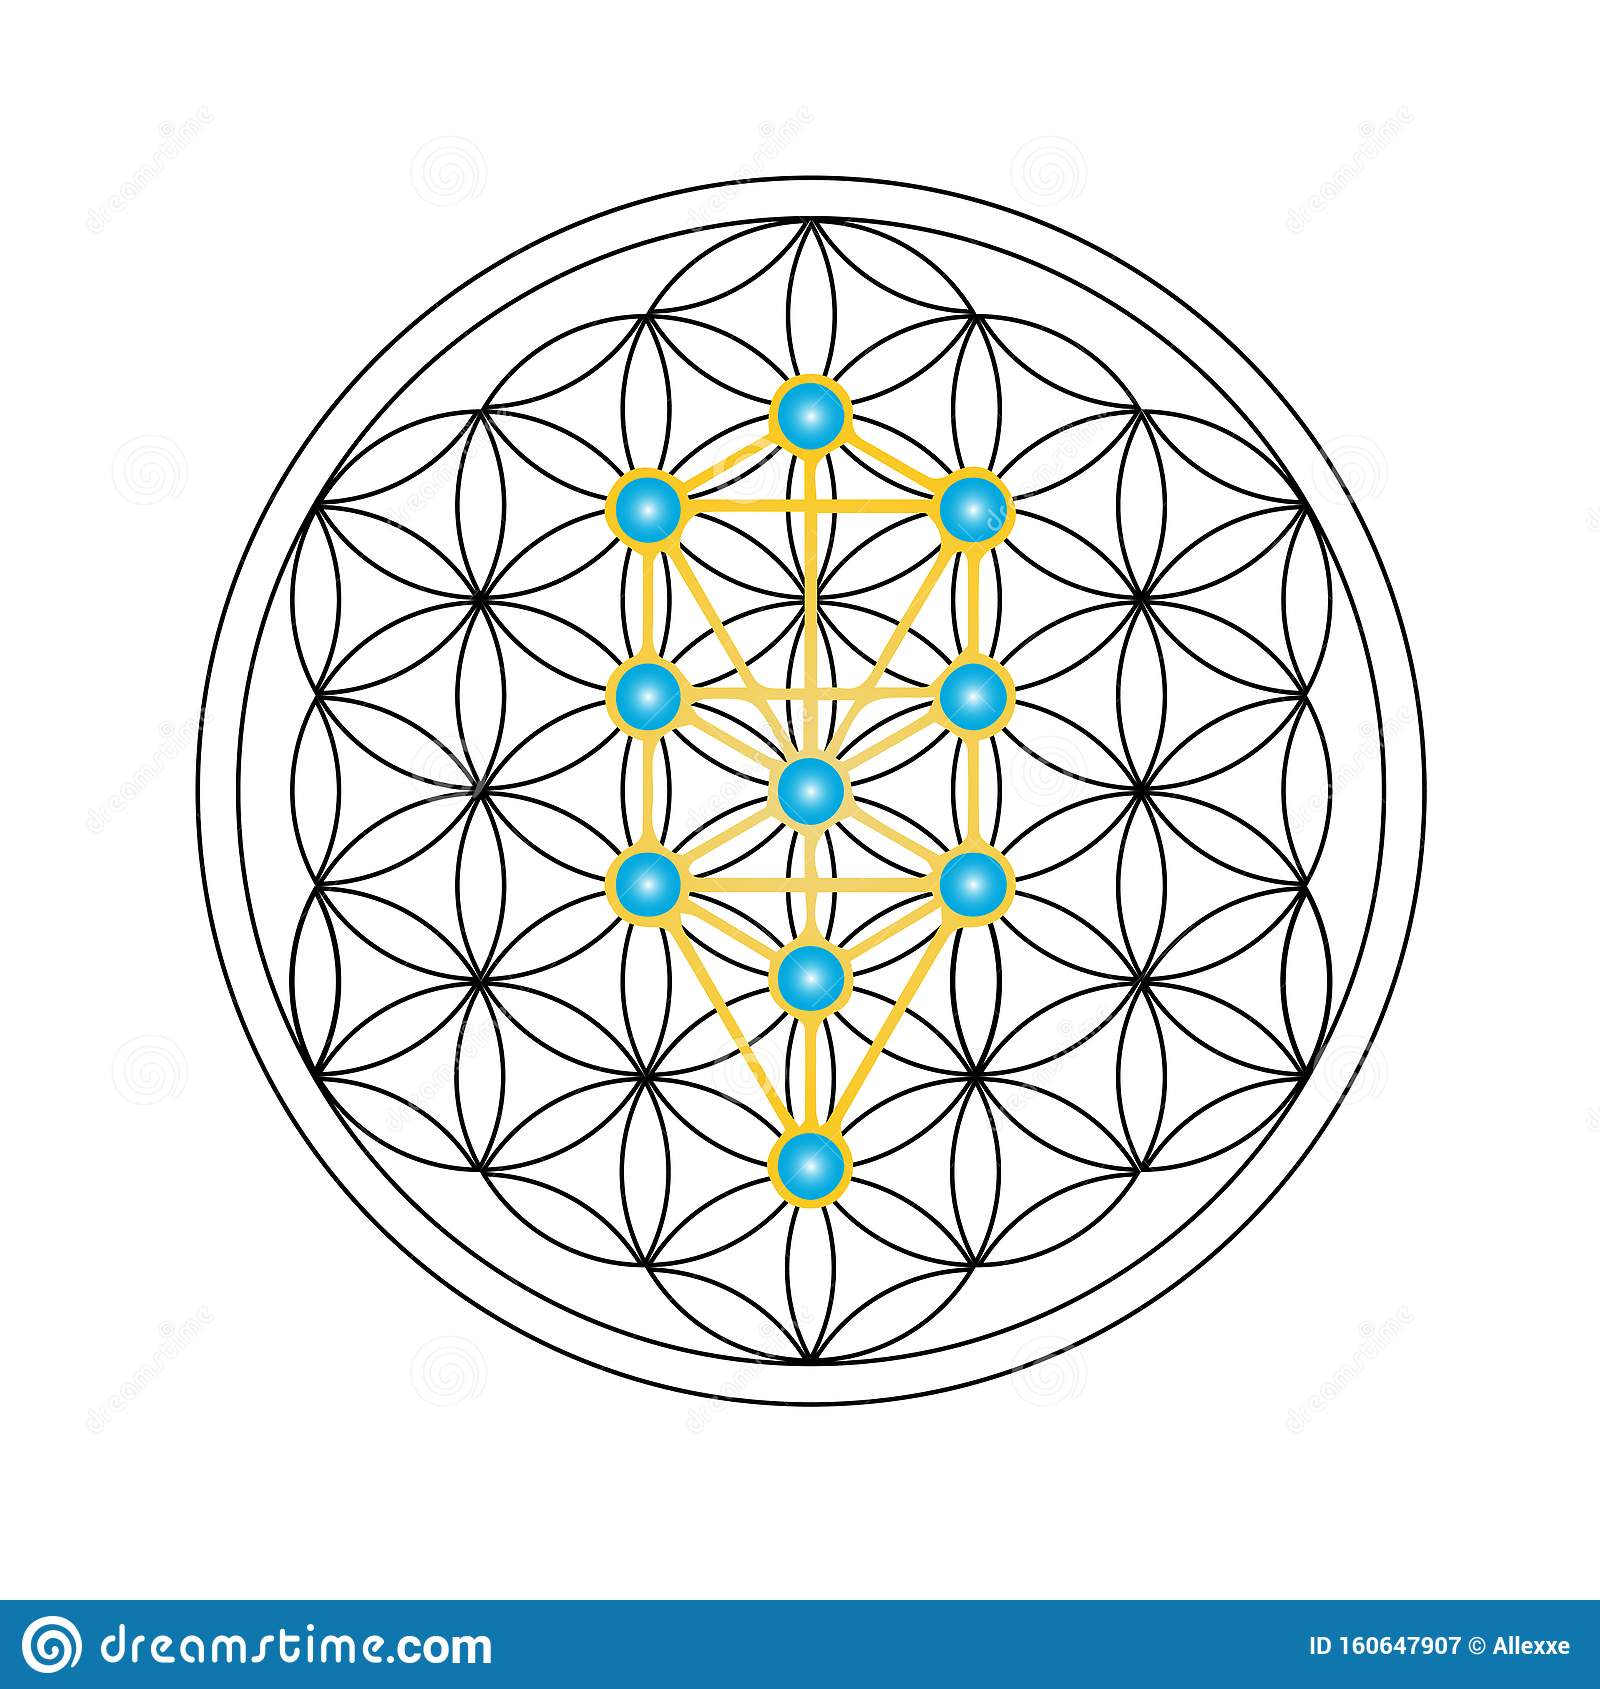 Flower Of Life With Kabbalah Tree Of Life Judaism Stock Vector Illustration Of Repeating Geometry 160647907 It is also a representation of how god the tree has always been a symbol of life, renewal, and energy. https www dreamstime com illustration flower life symbol isolated white background sacred geometry kabbalah tree life flower life image160647907